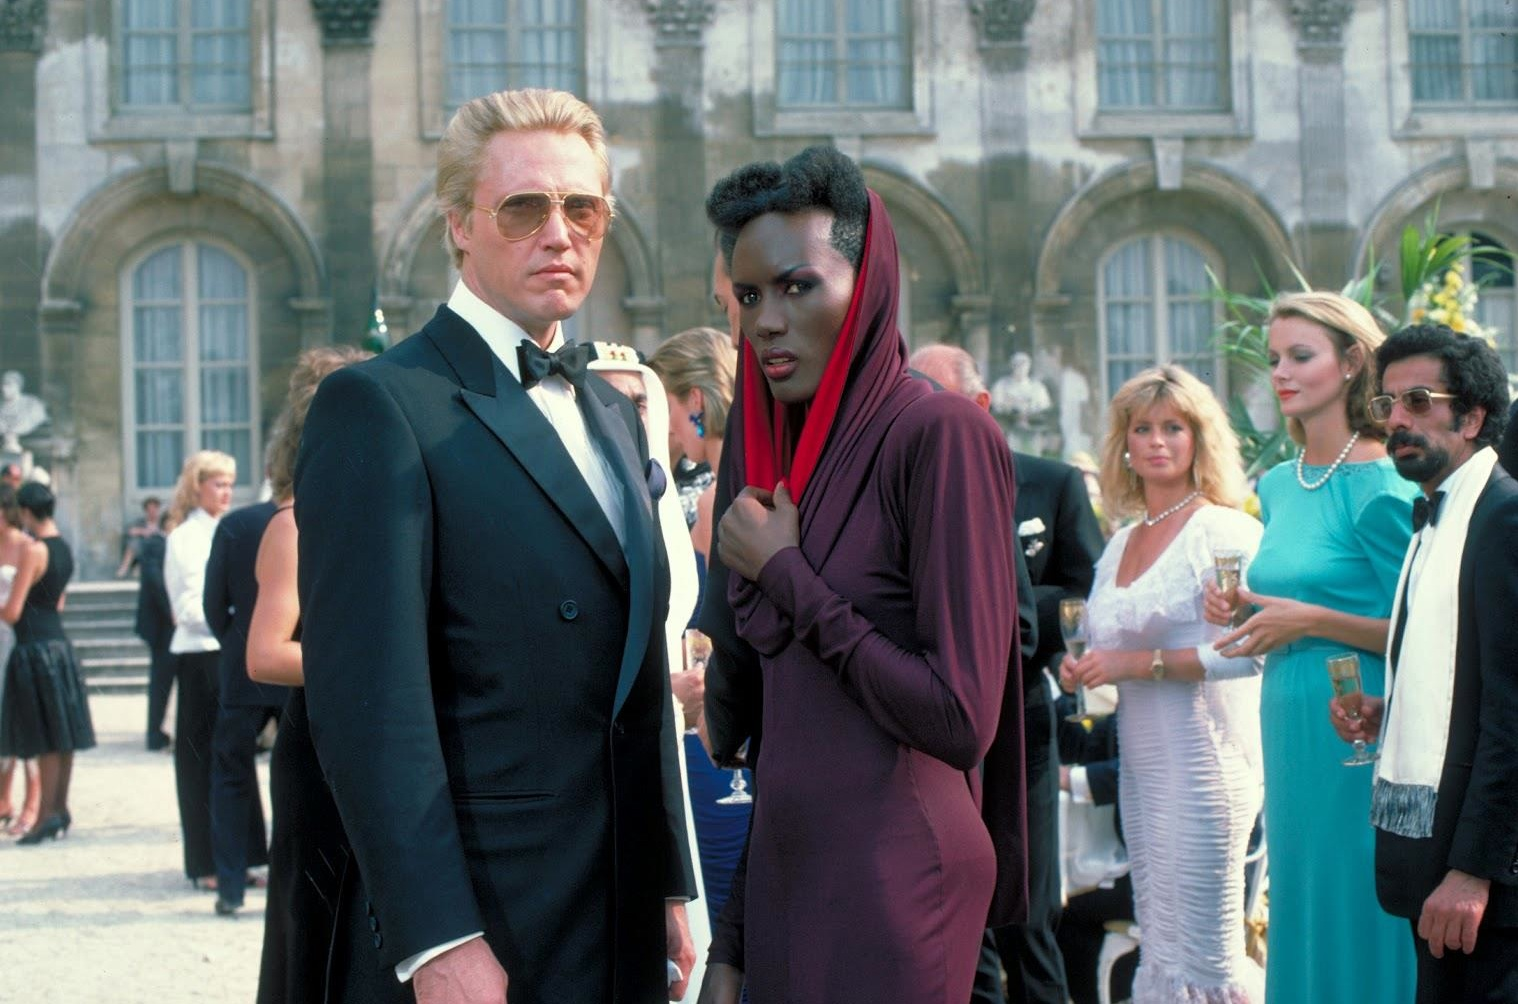 Christopher Walken as tech billionnaire villain Max Zorin with Grace Jones as henchwoman May Day in A View to a Kill (1985)